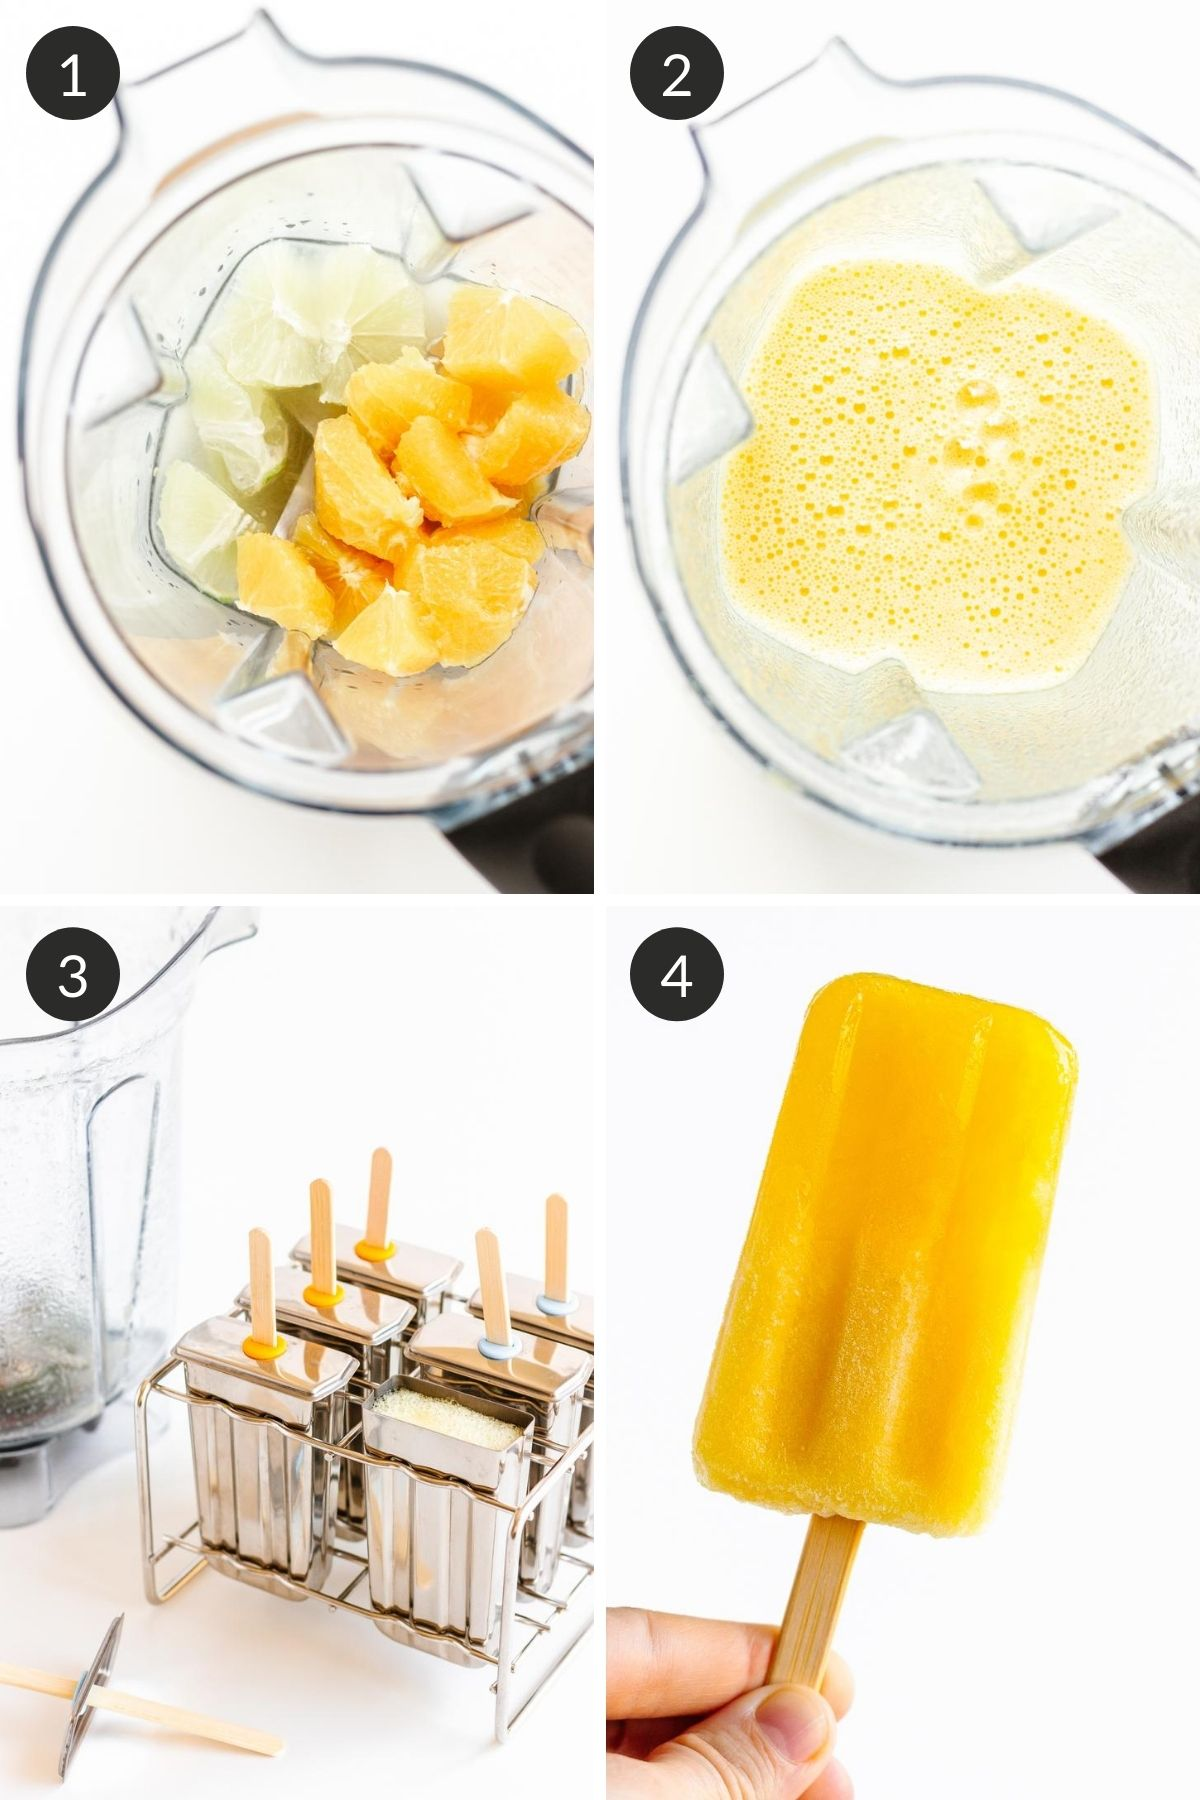 Photo collage showing how to make orange lemon lime popsicles step by step.